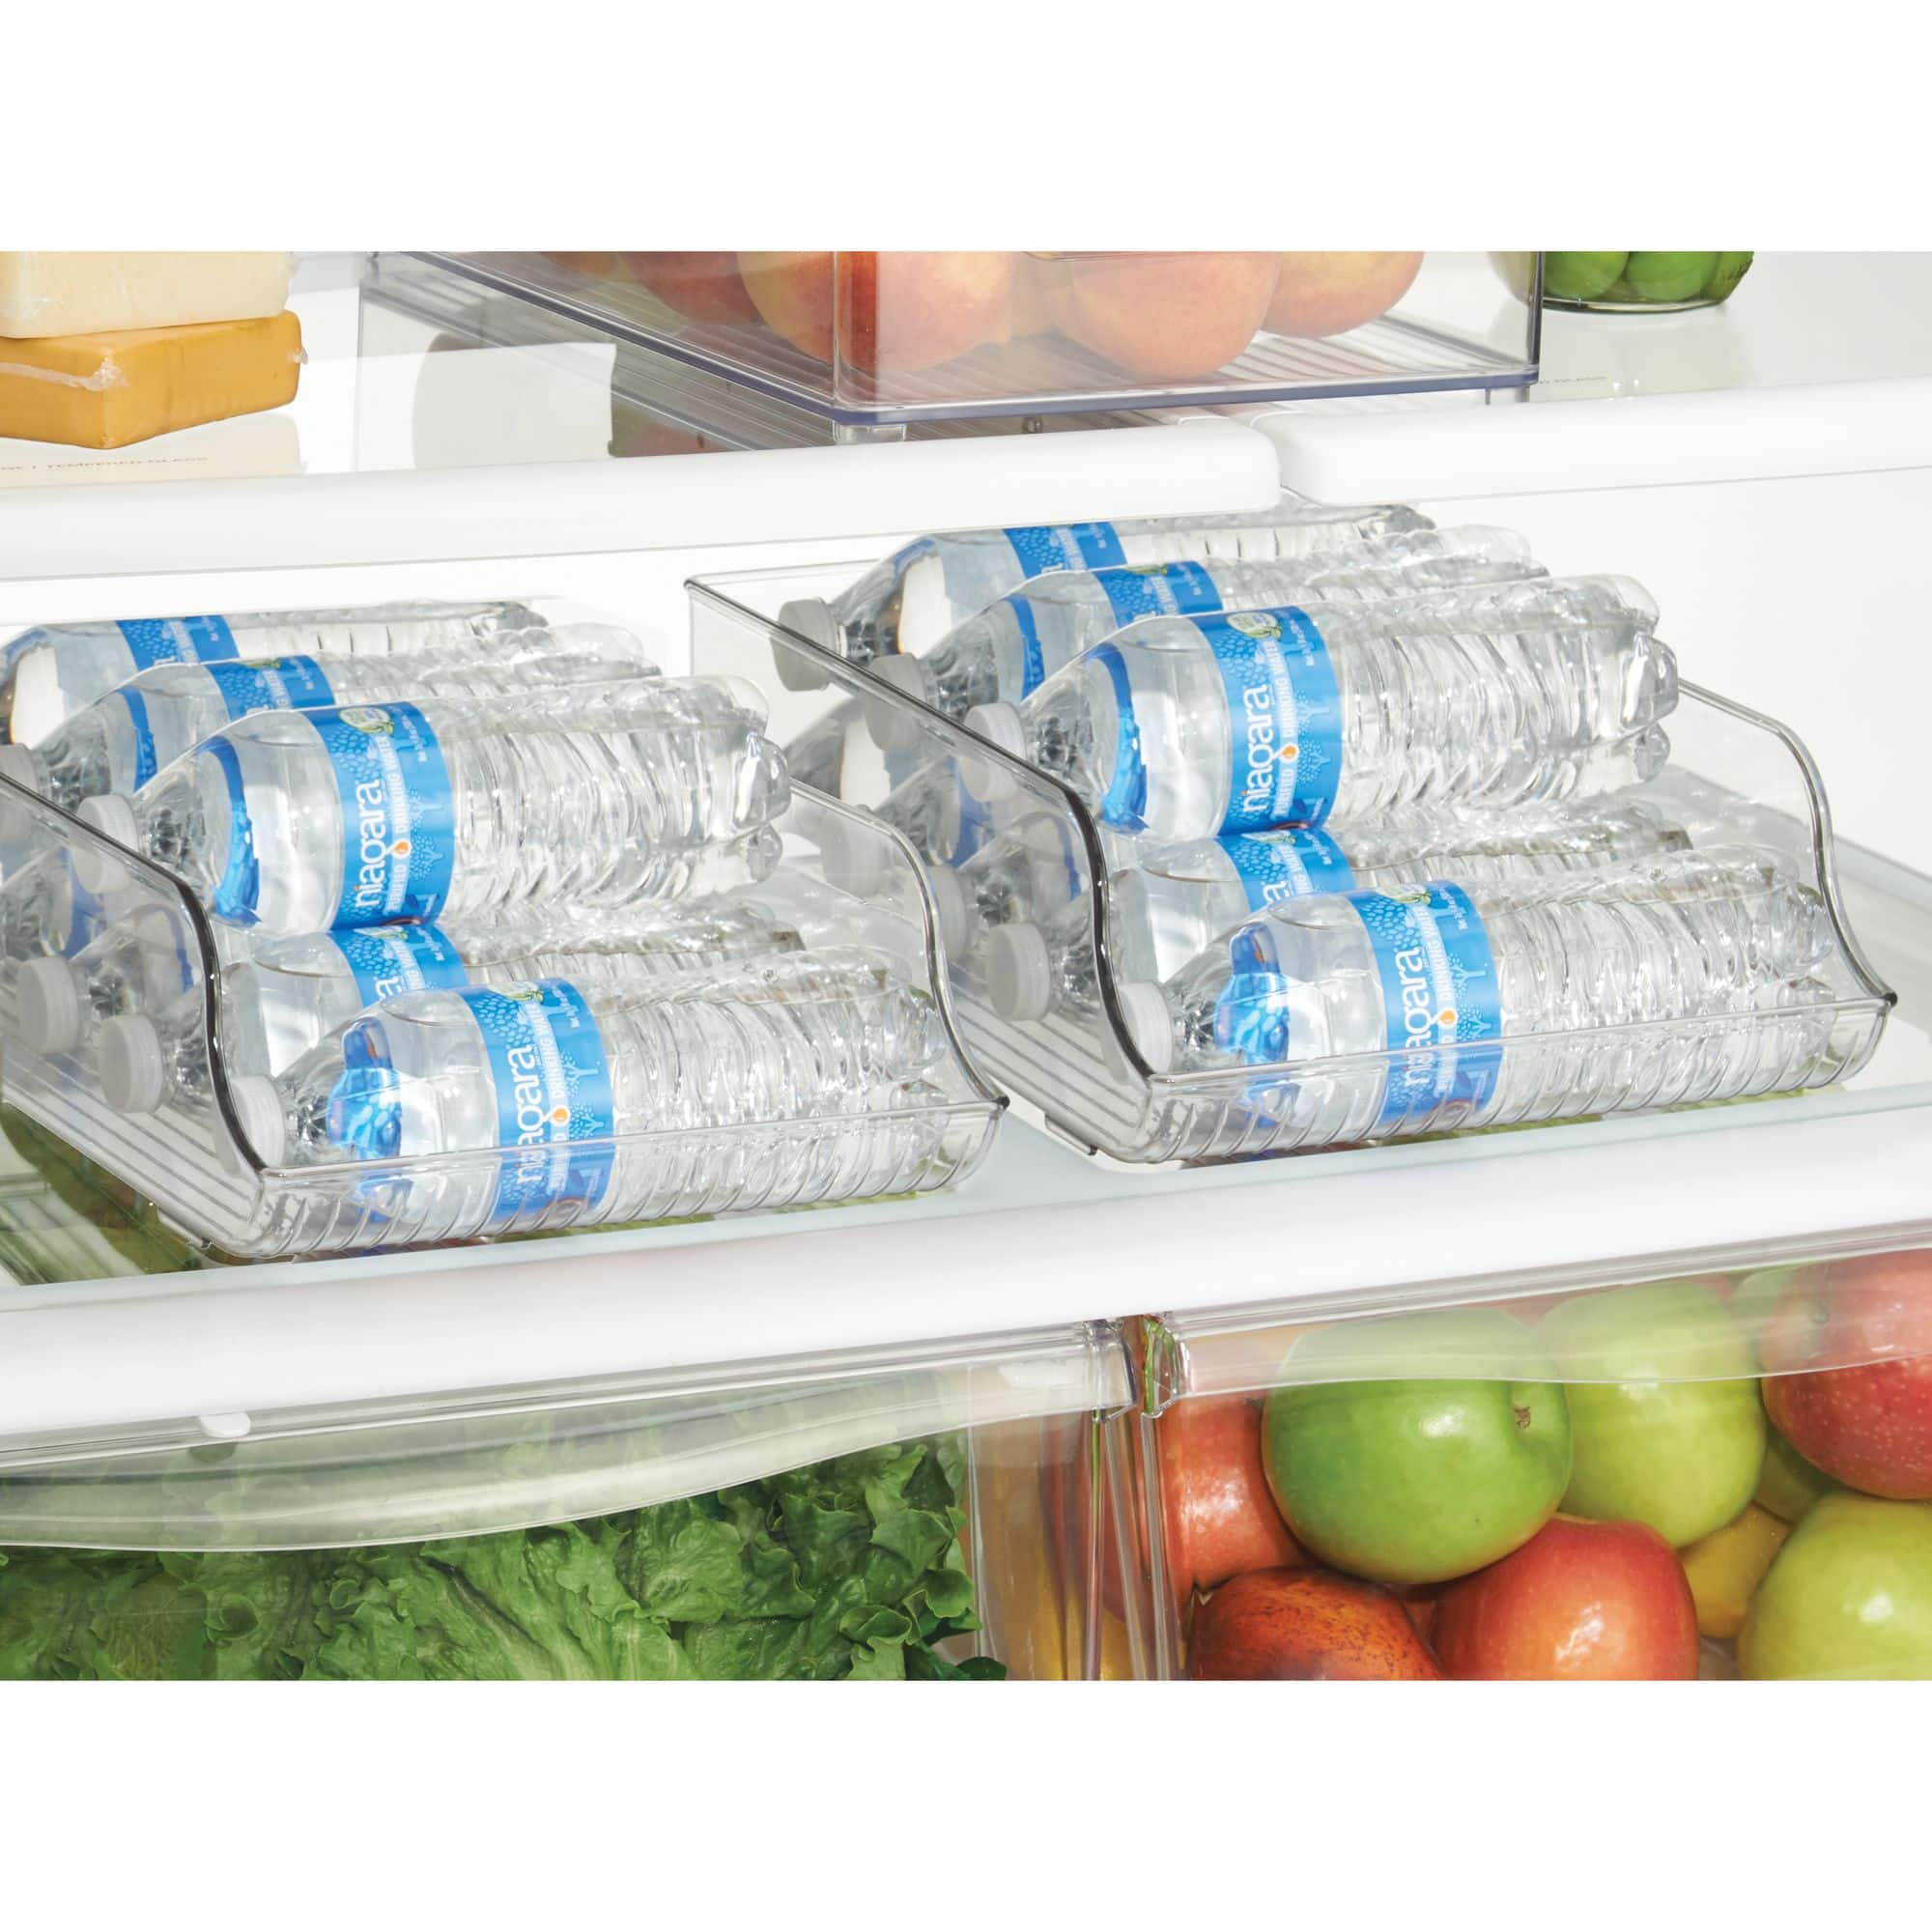 InterDesign Fridge Binz Water Bottle Holder, Clear [name: count_per_pack value: count_per_pack-1] $8.61